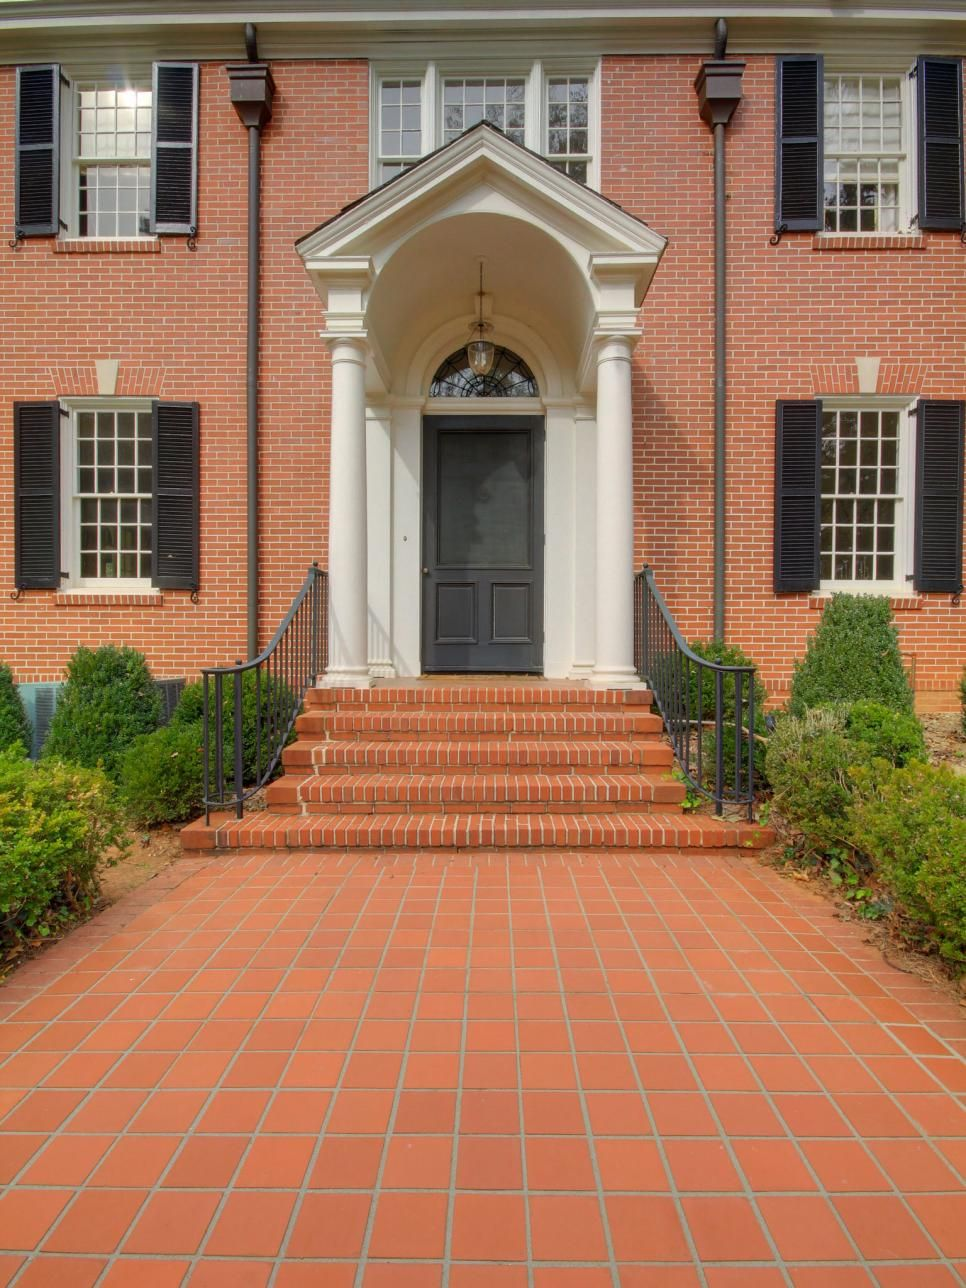 The Black Front Door Gives A Stately Look To A Red Brick Home In A